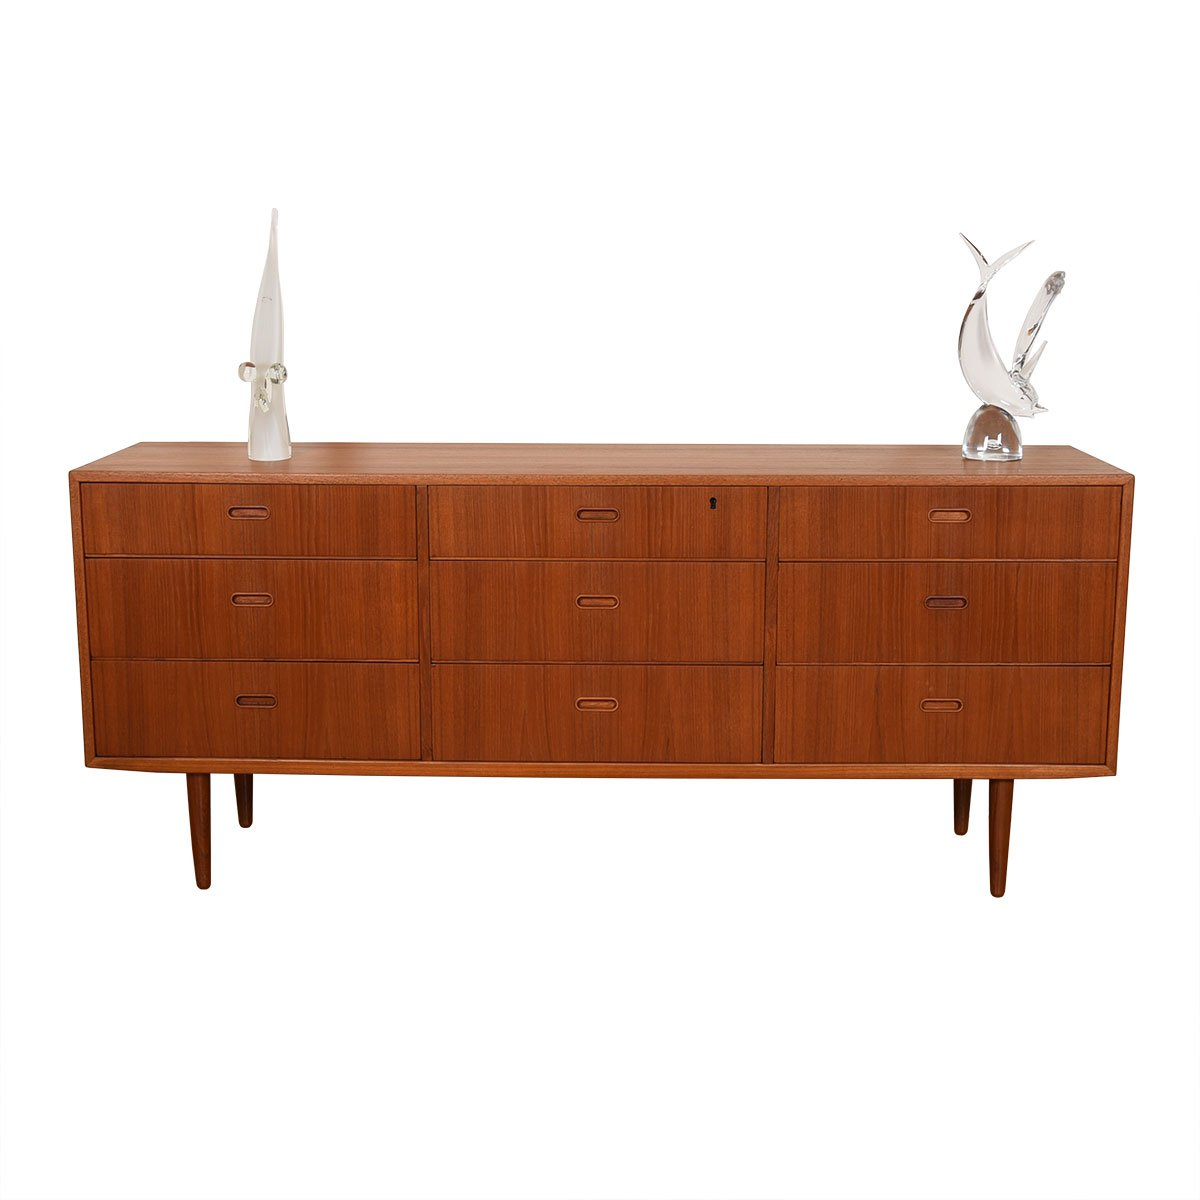 Danish Modern Teak 9 Drawer Dresser